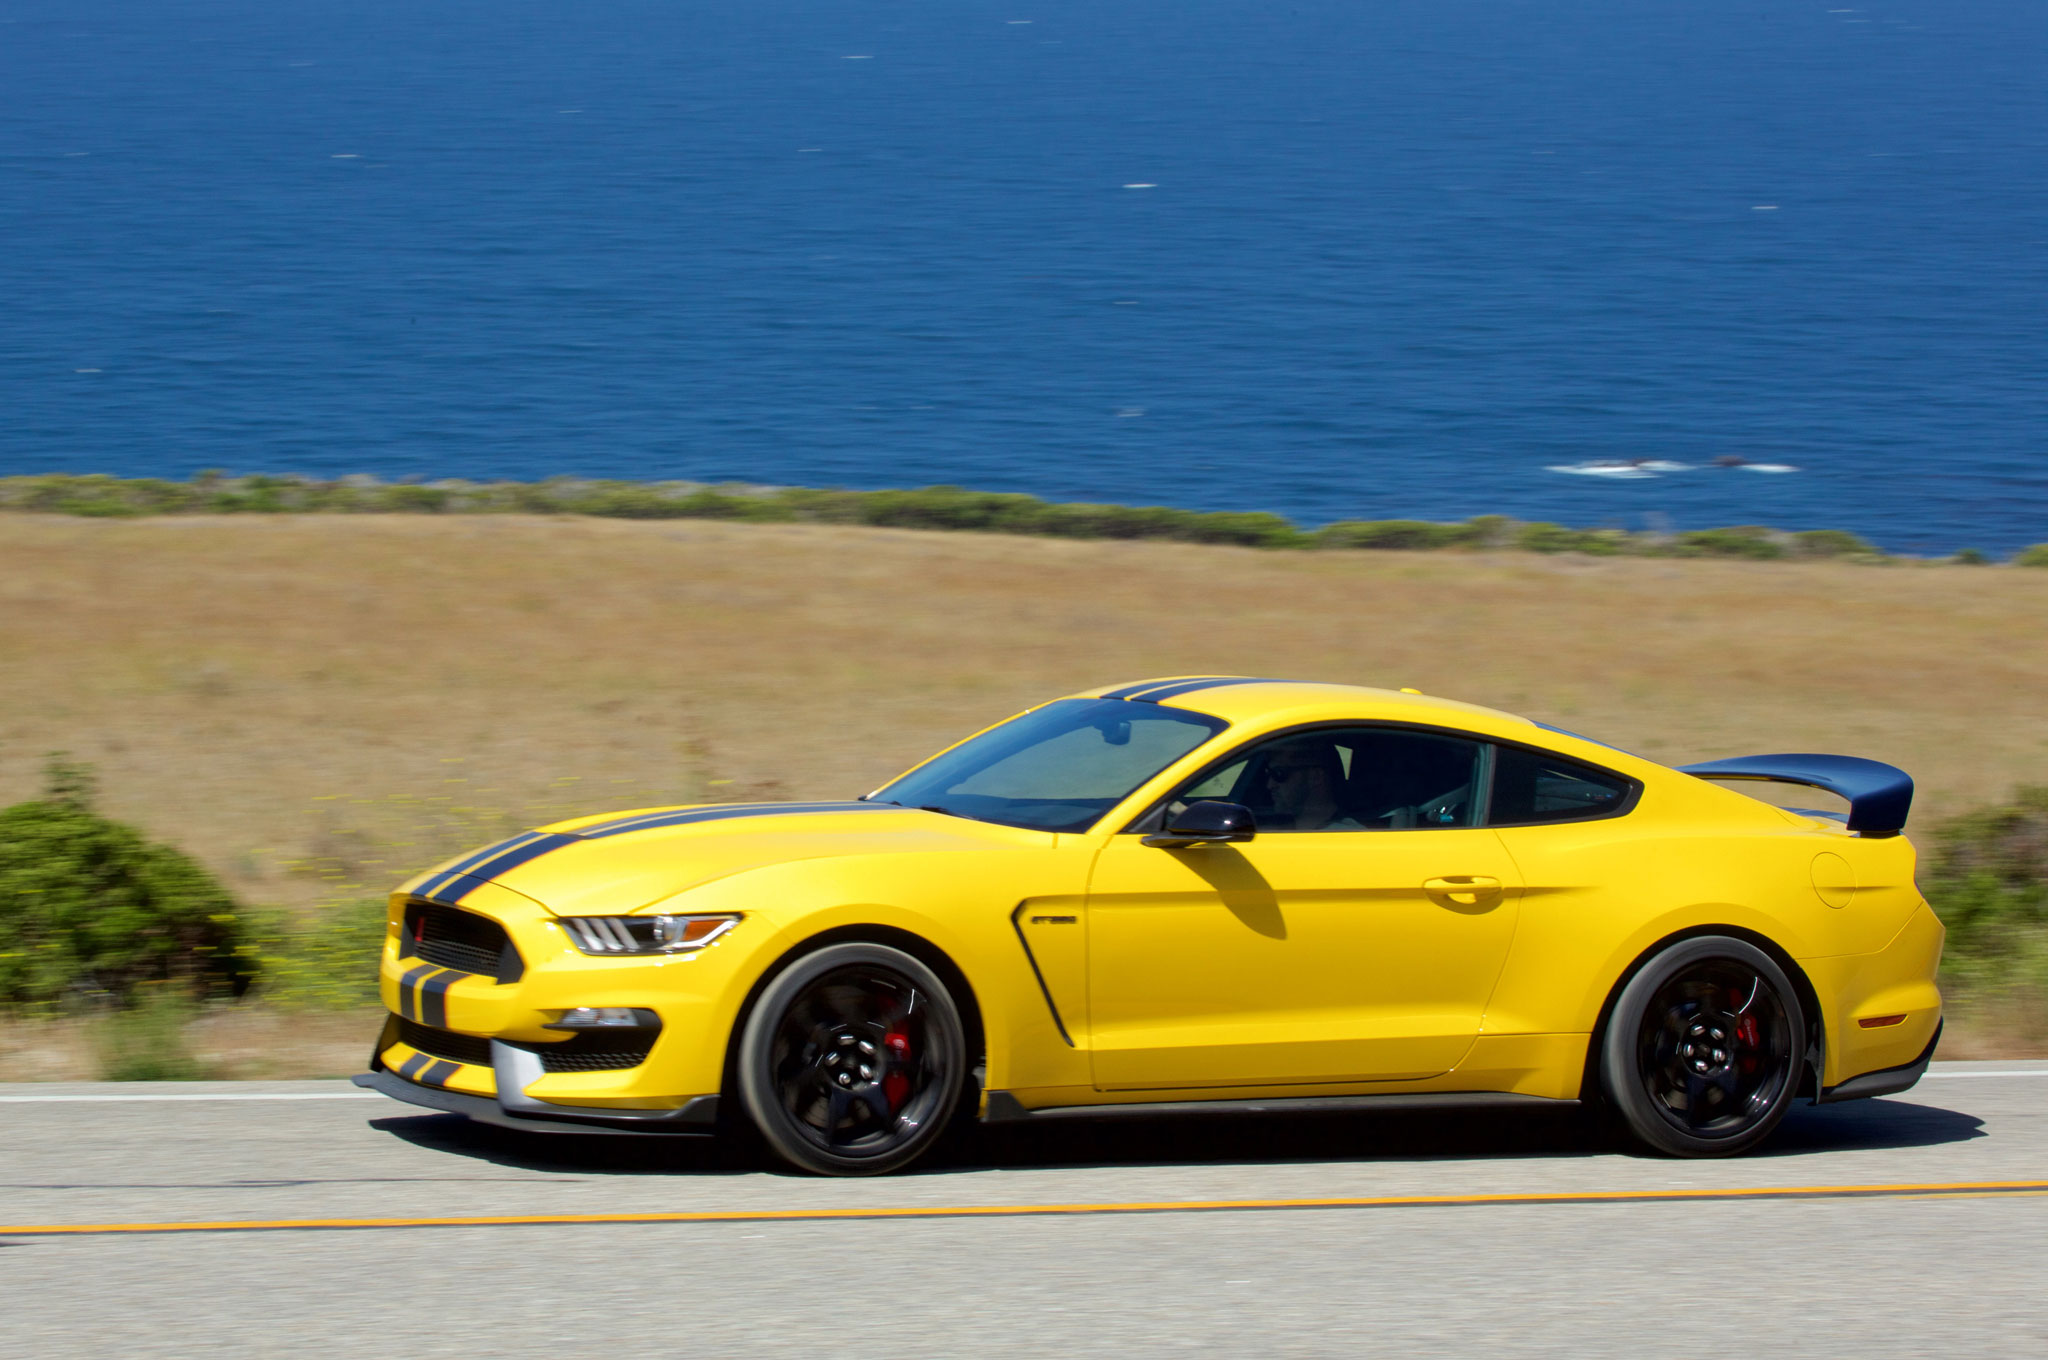 Gt350r Review >> 2017 Ford Shelby GT350 One Week Review | Automobile Magazine